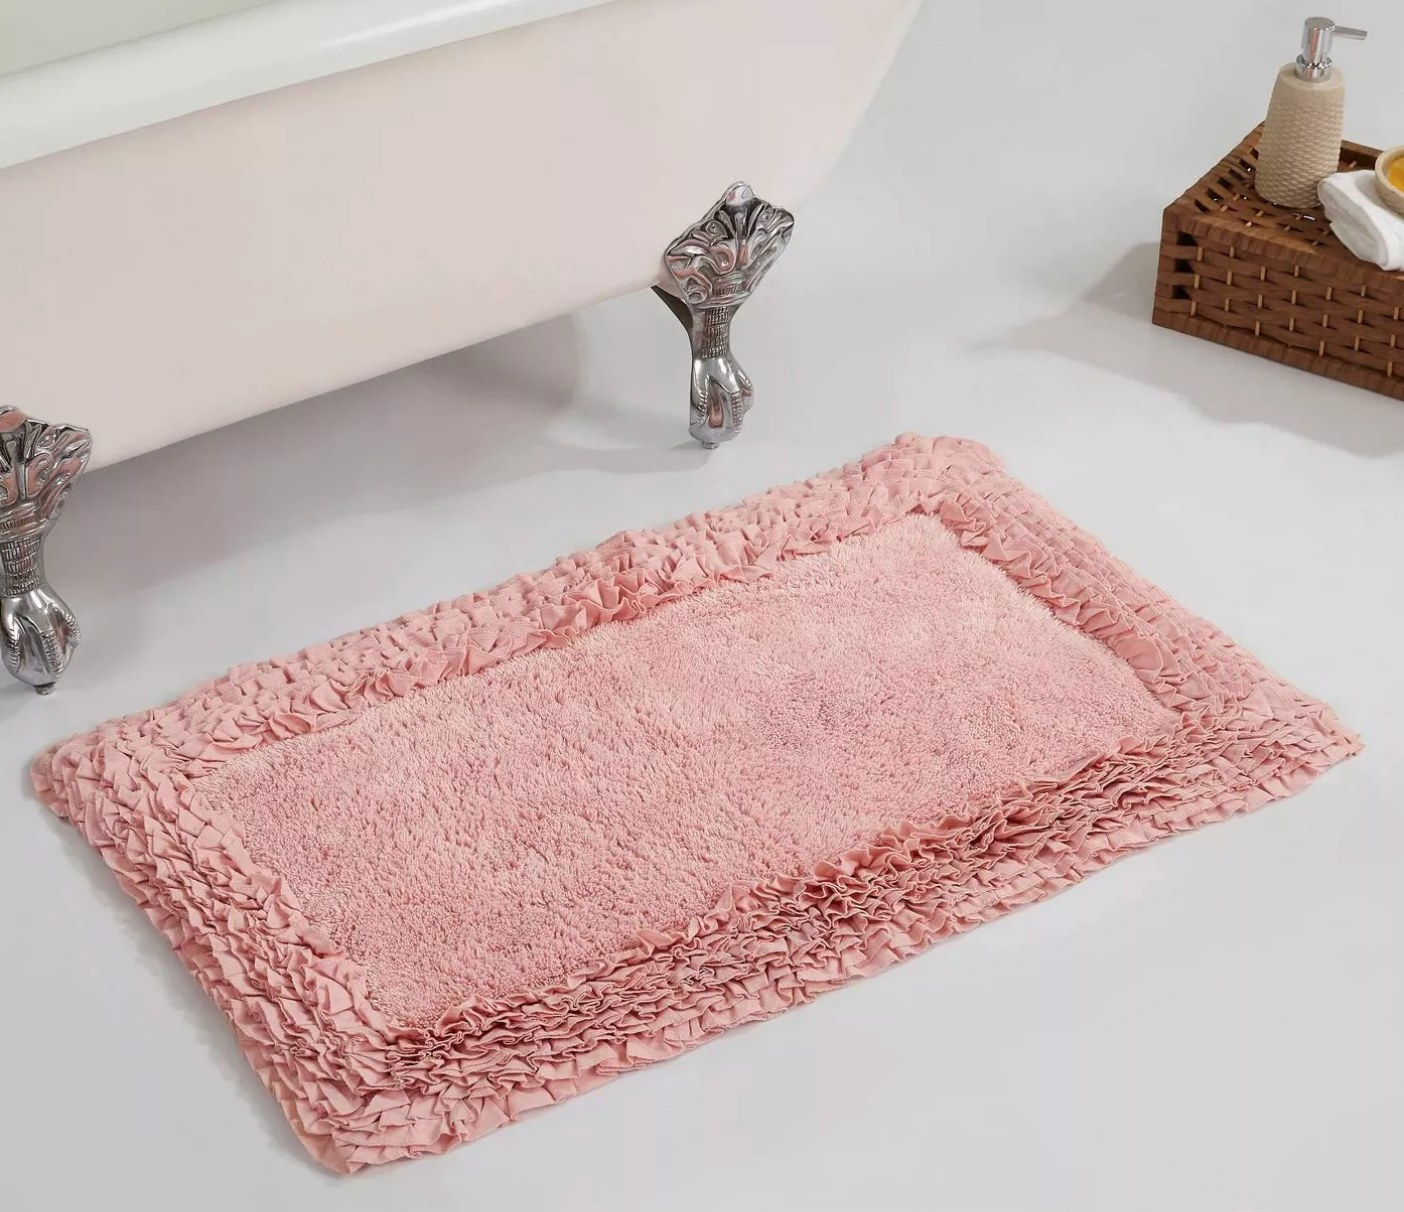 The shaggy border collection bath rug in pink